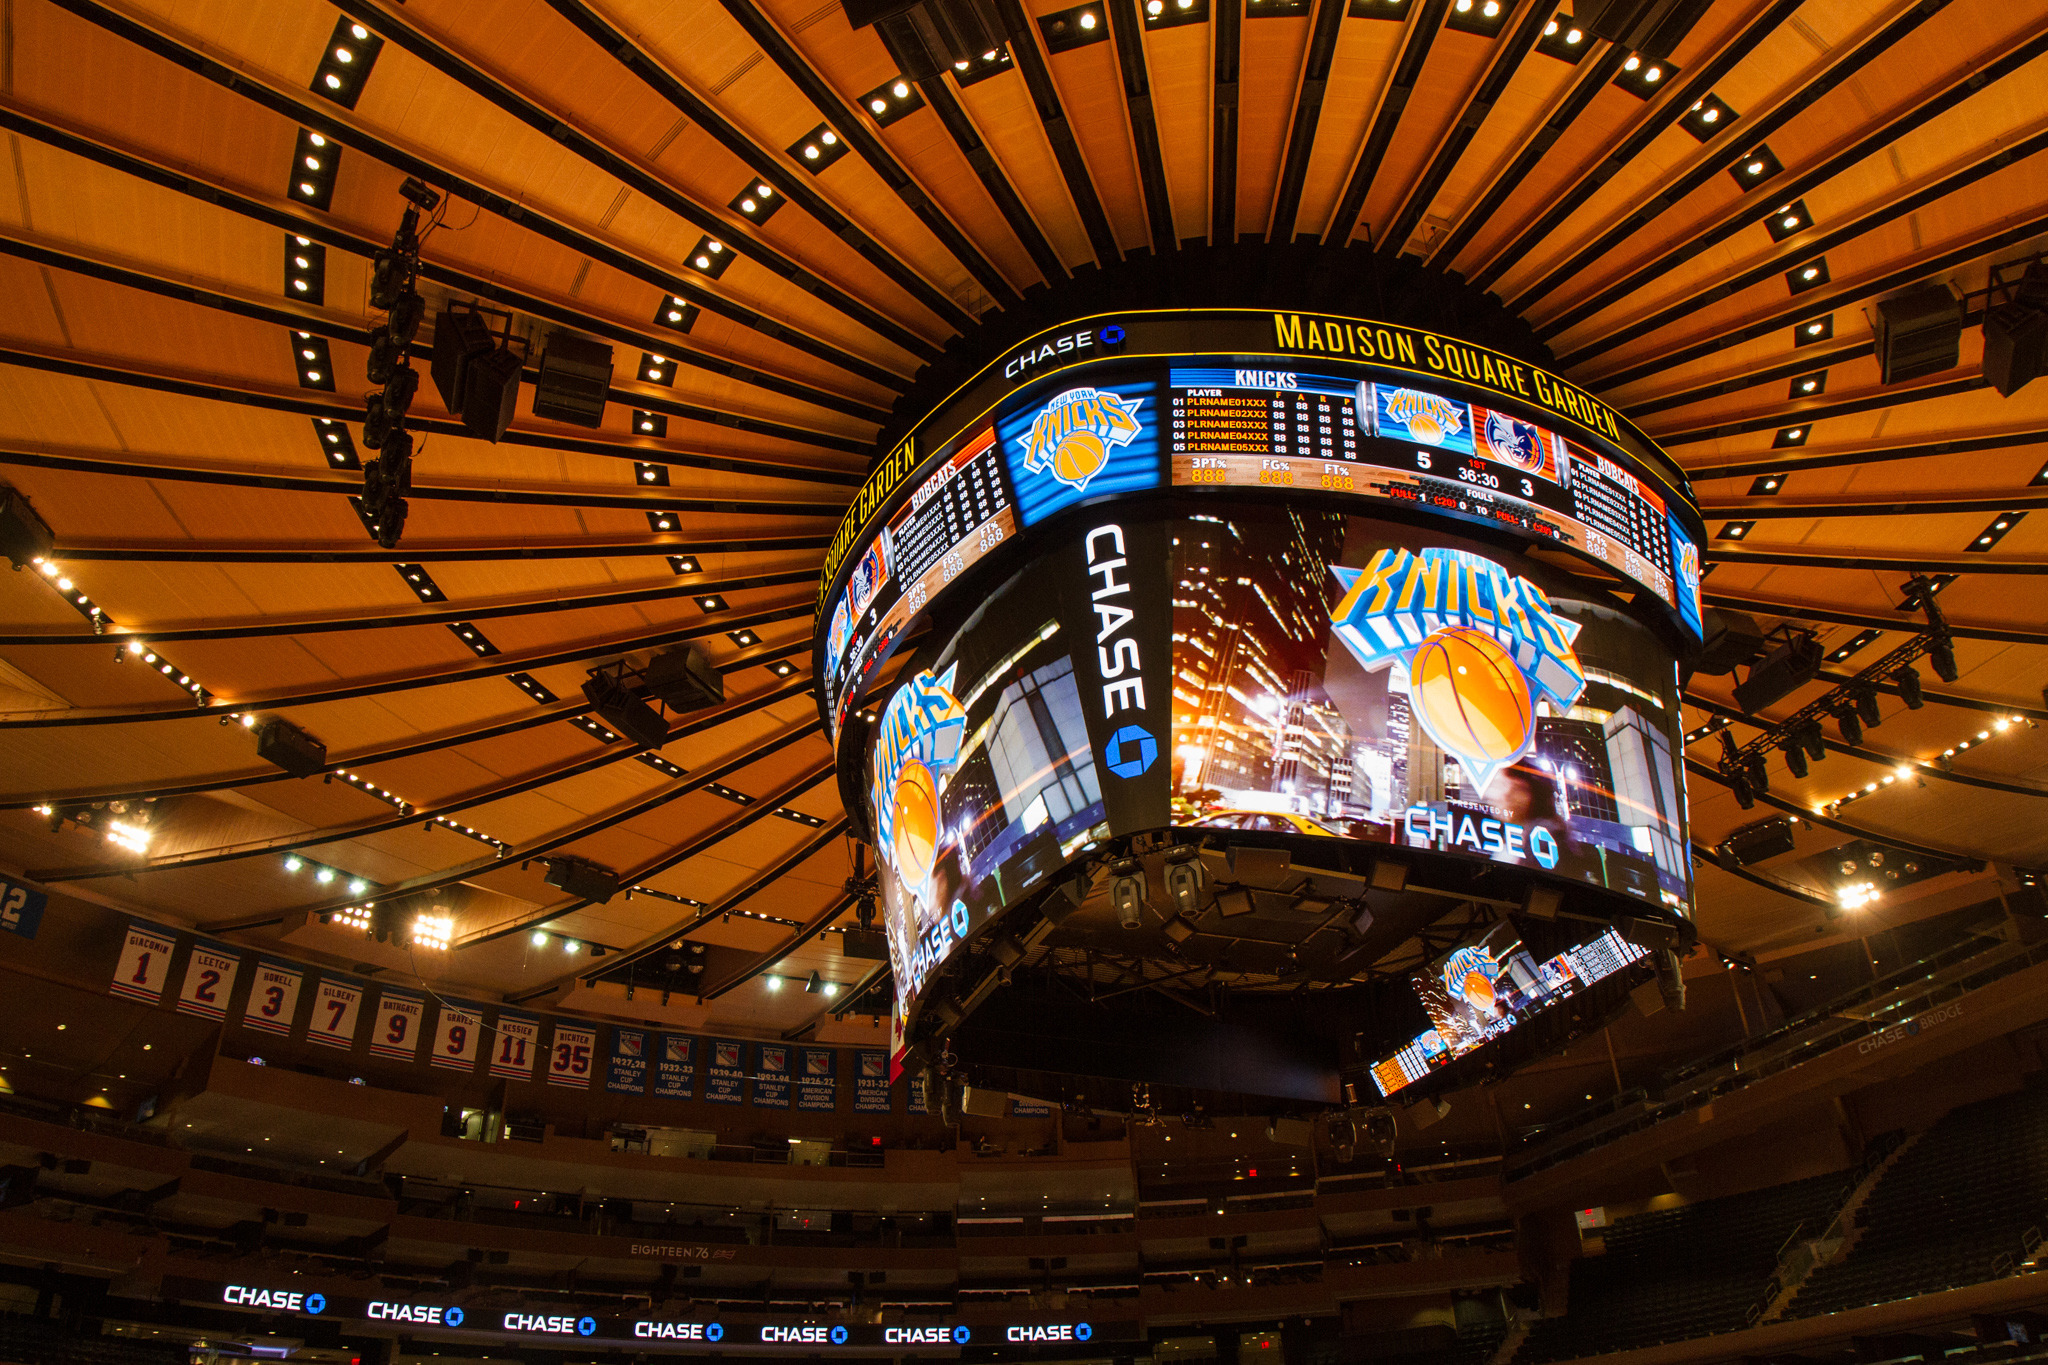 Madison Square Garden All-Access Tour | Things to do in New York